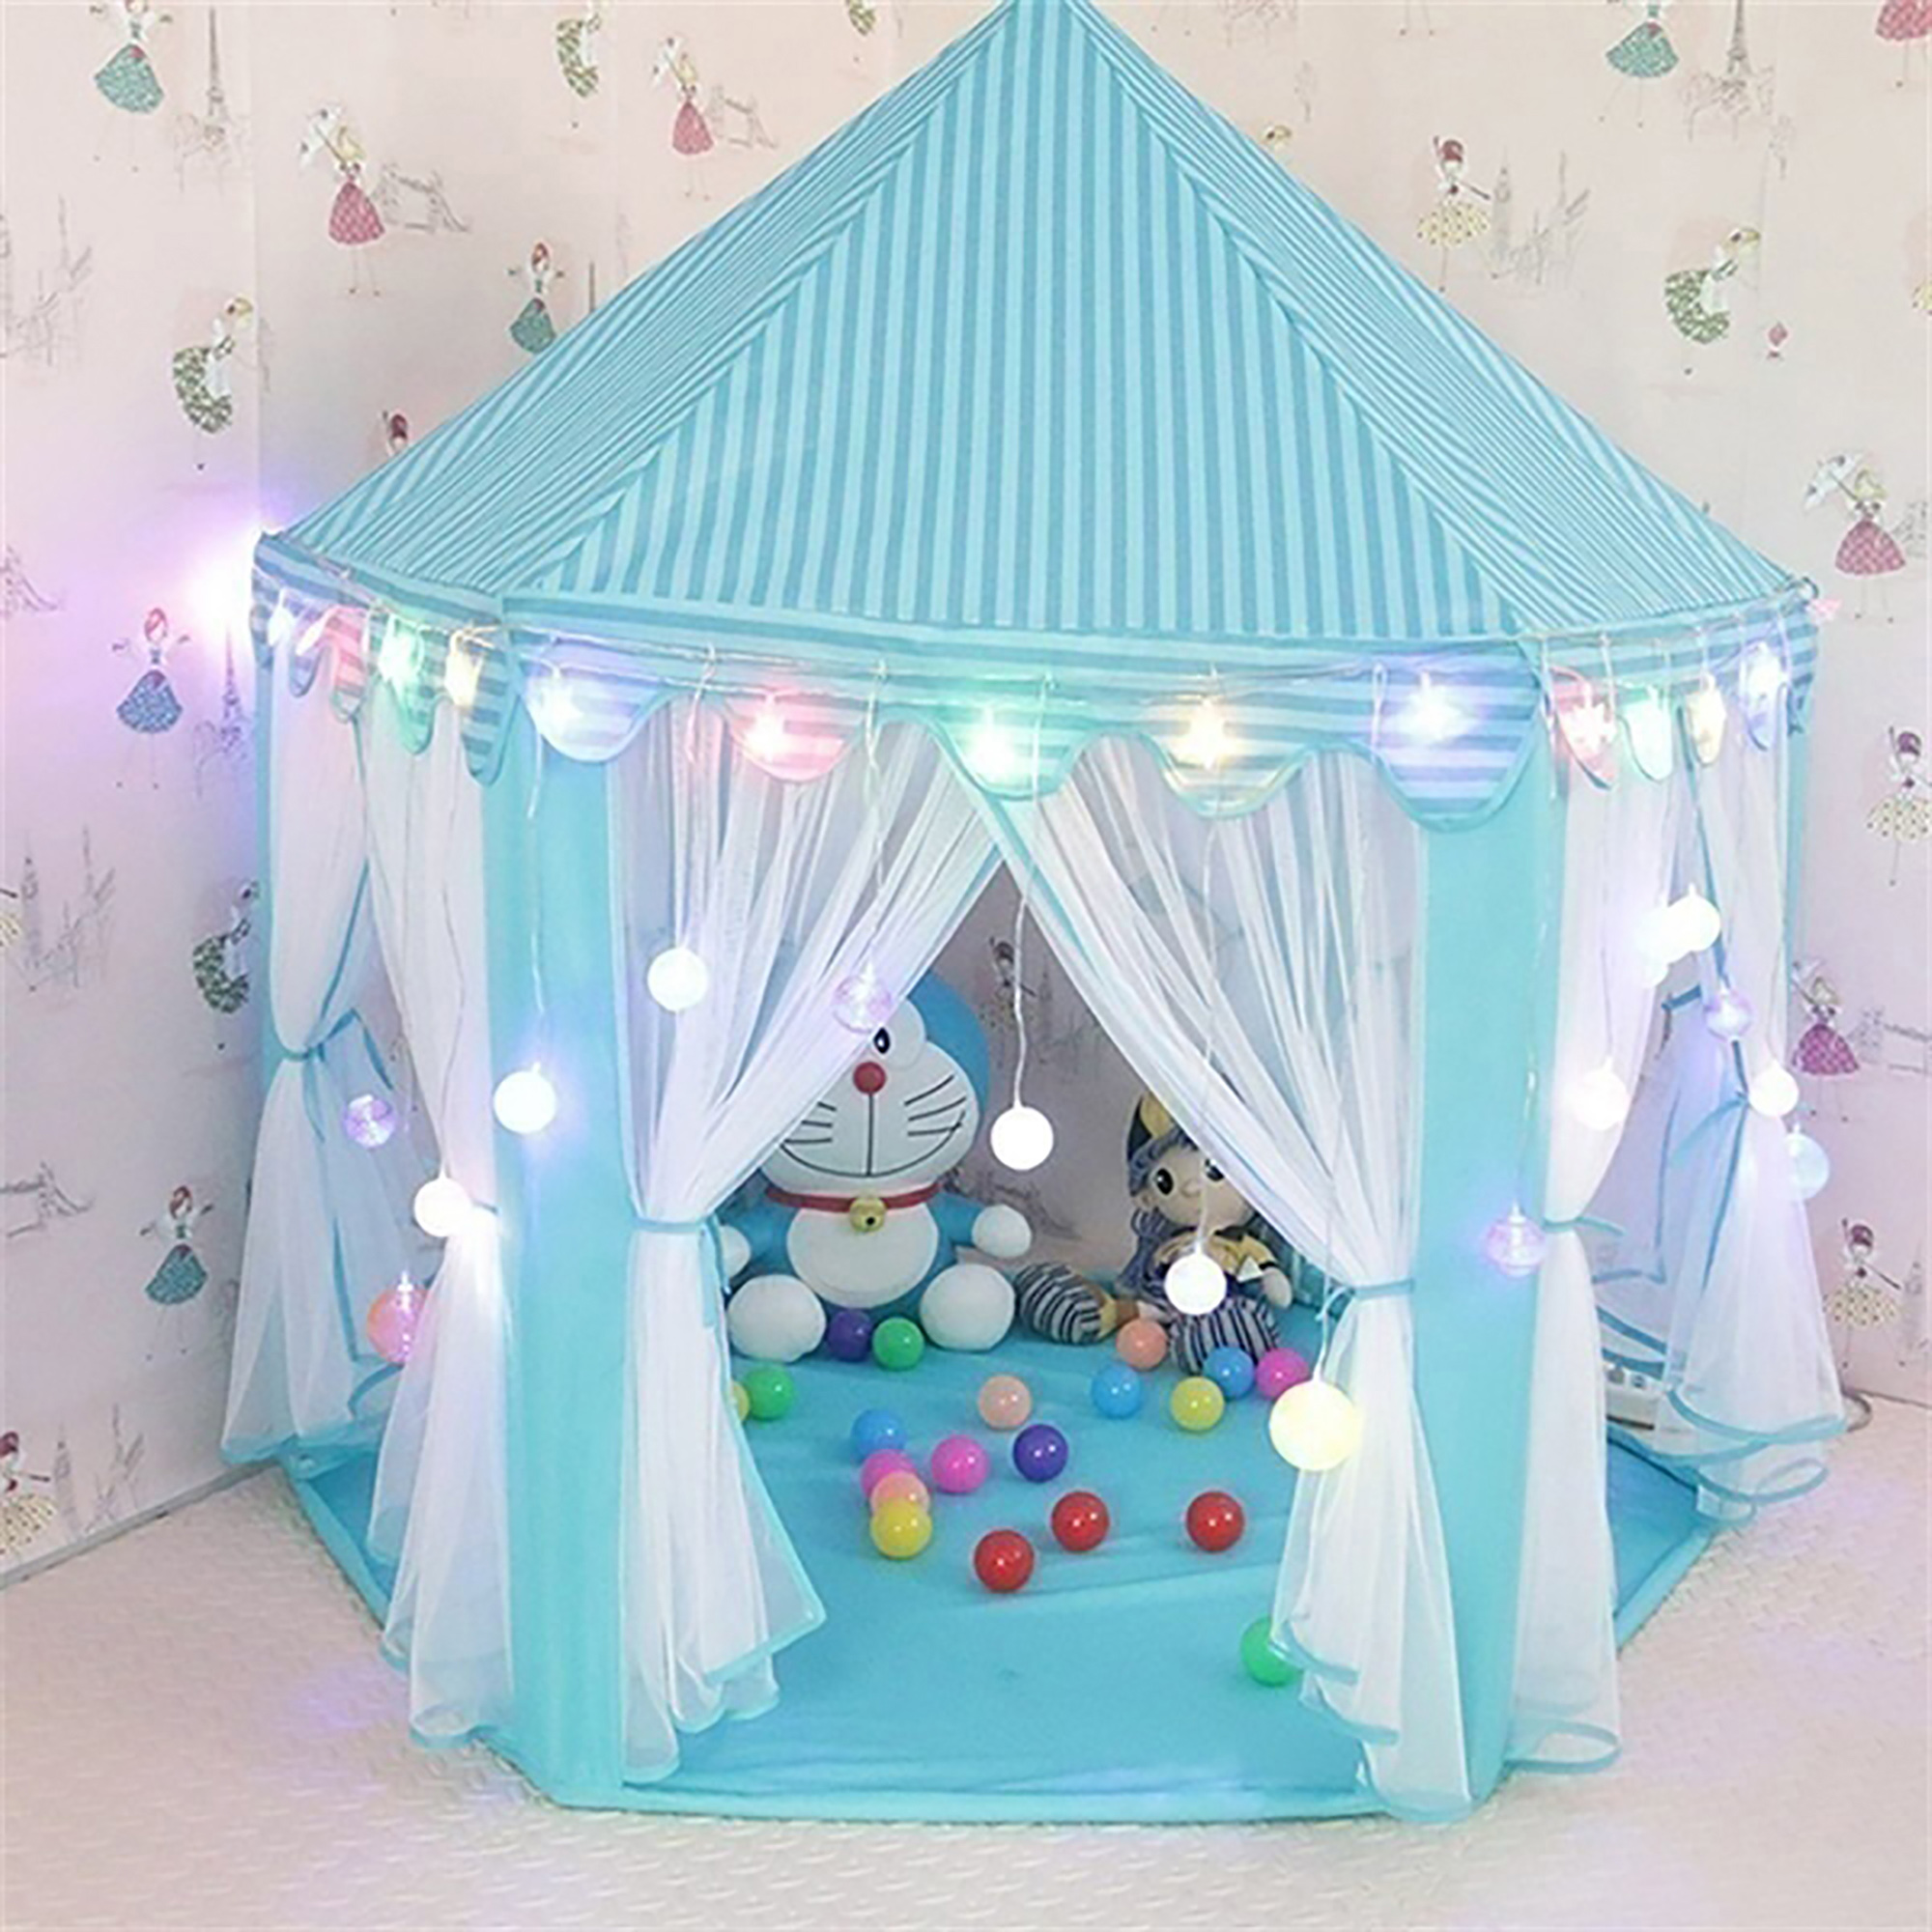 Tents for Girls Princess Castle Play House for Child Outdoor Indoor Portable Kids Children Play Tent for Girls Pink Birthday Gift - Walmart.com & Tents for Girls Princess Castle Play House for Child Outdoor ...